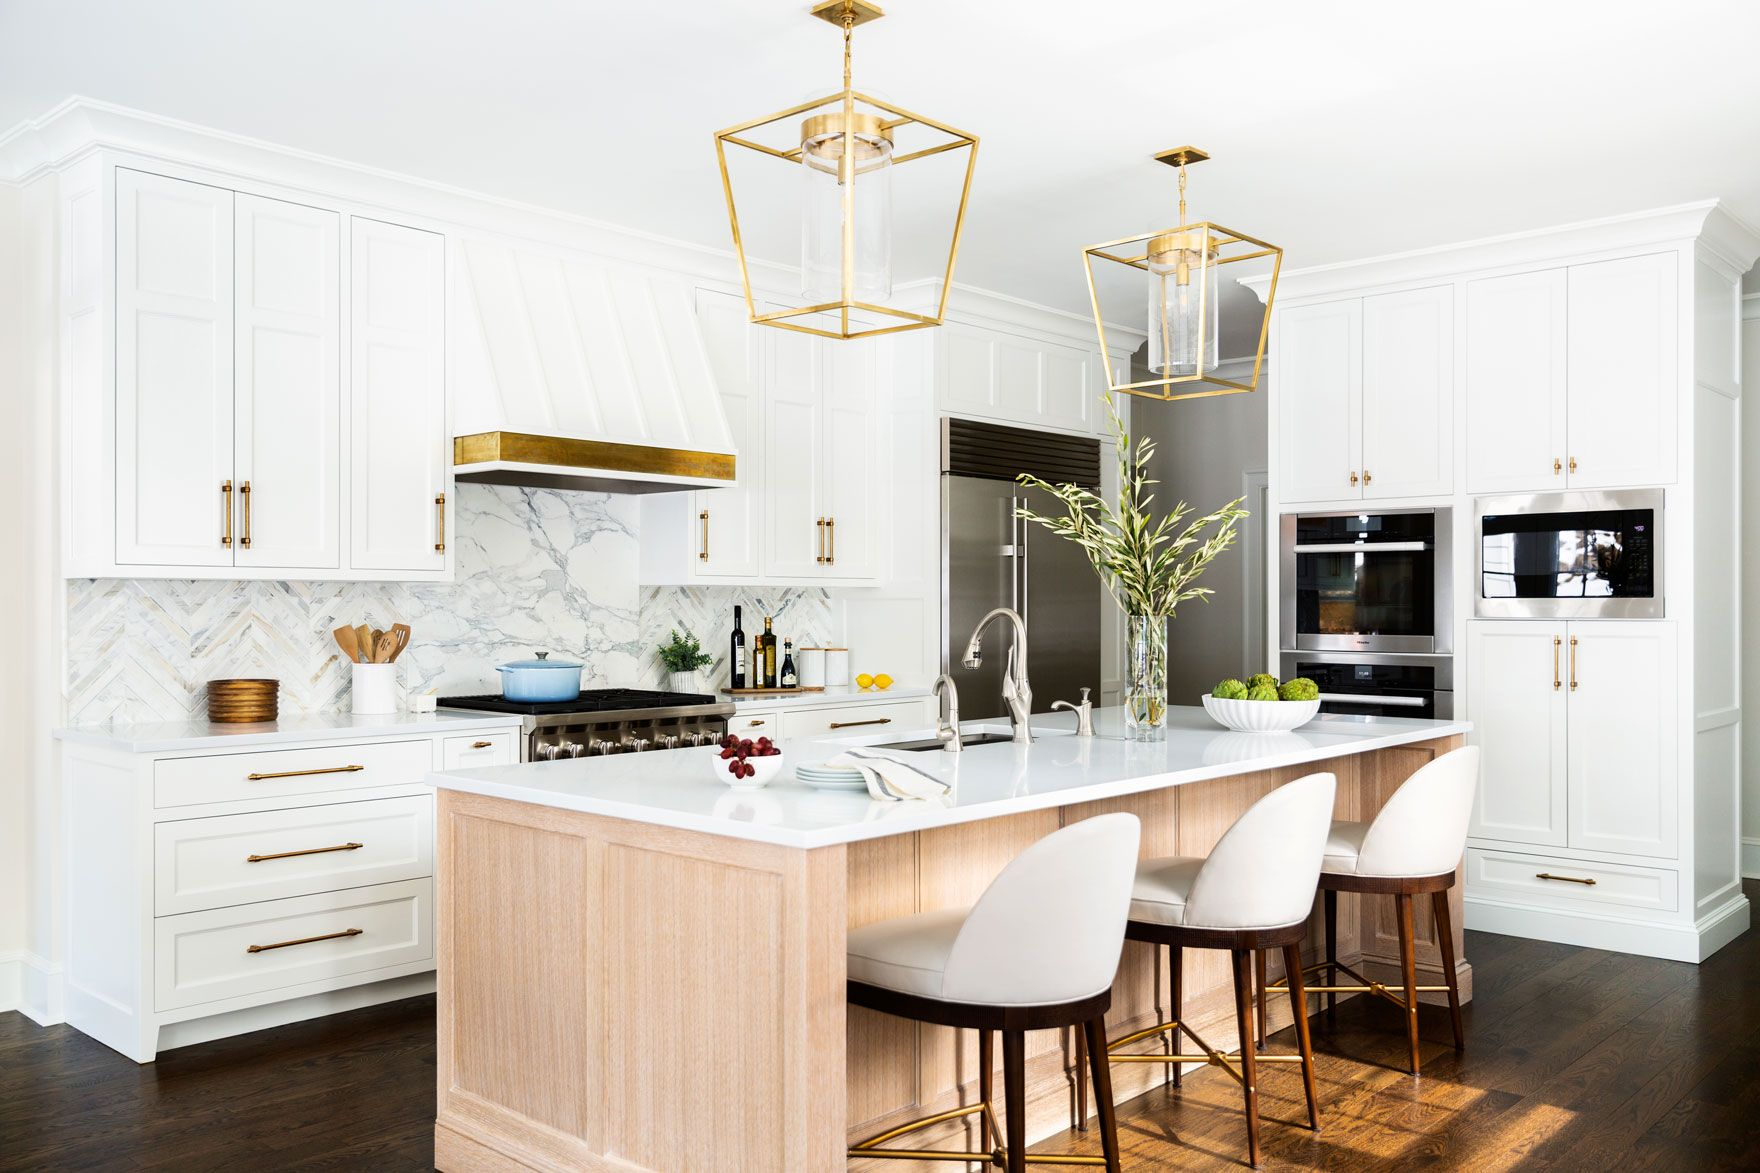 You'd Never Guess a Kitchen This Elegant Is Durable, Too